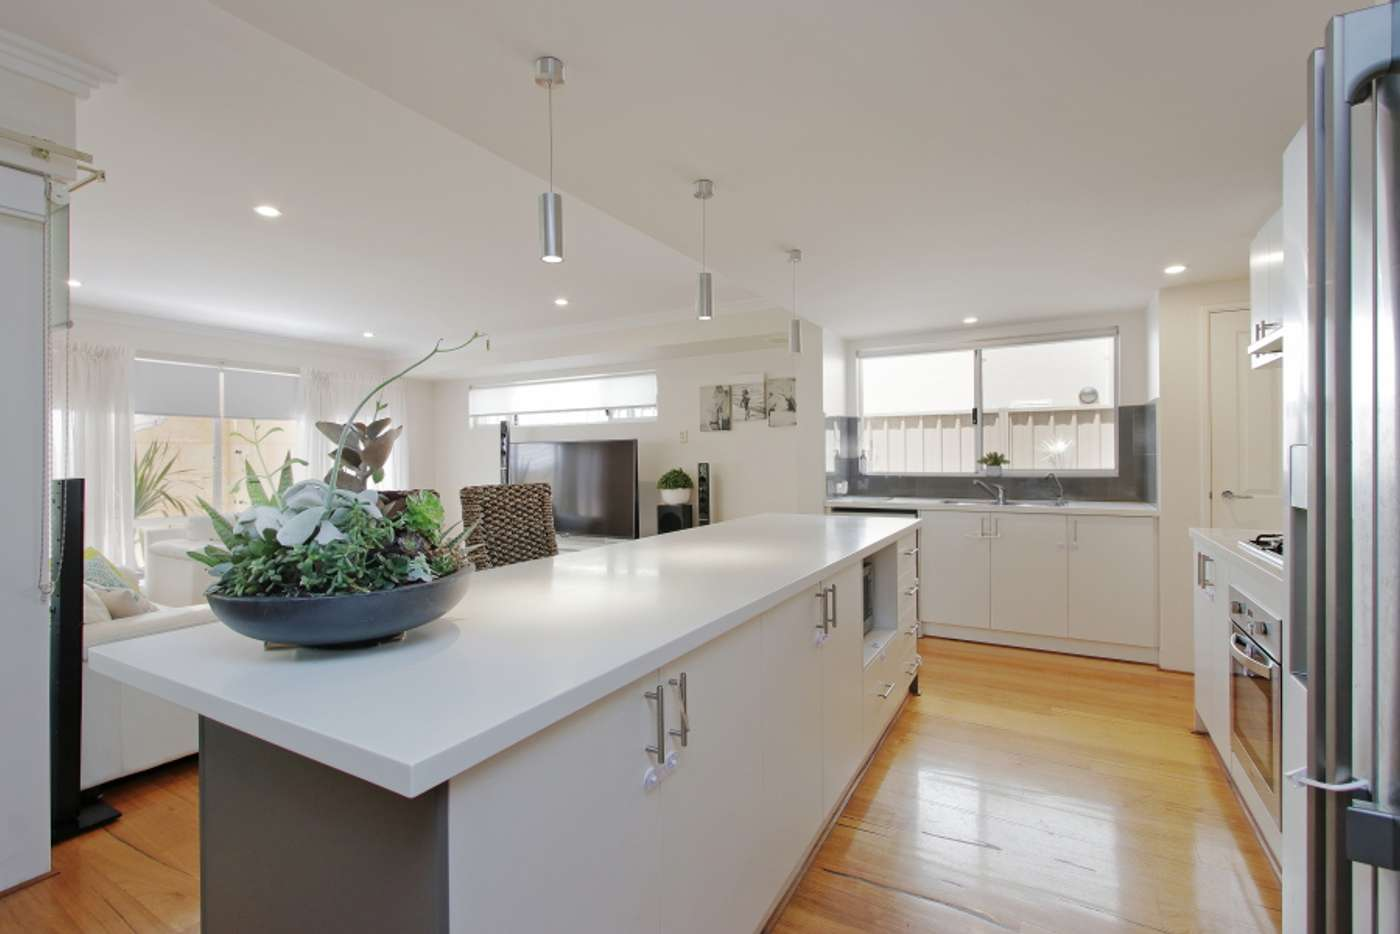 Seventh view of Homely house listing, 8 Loch Street, North Perth WA 6006